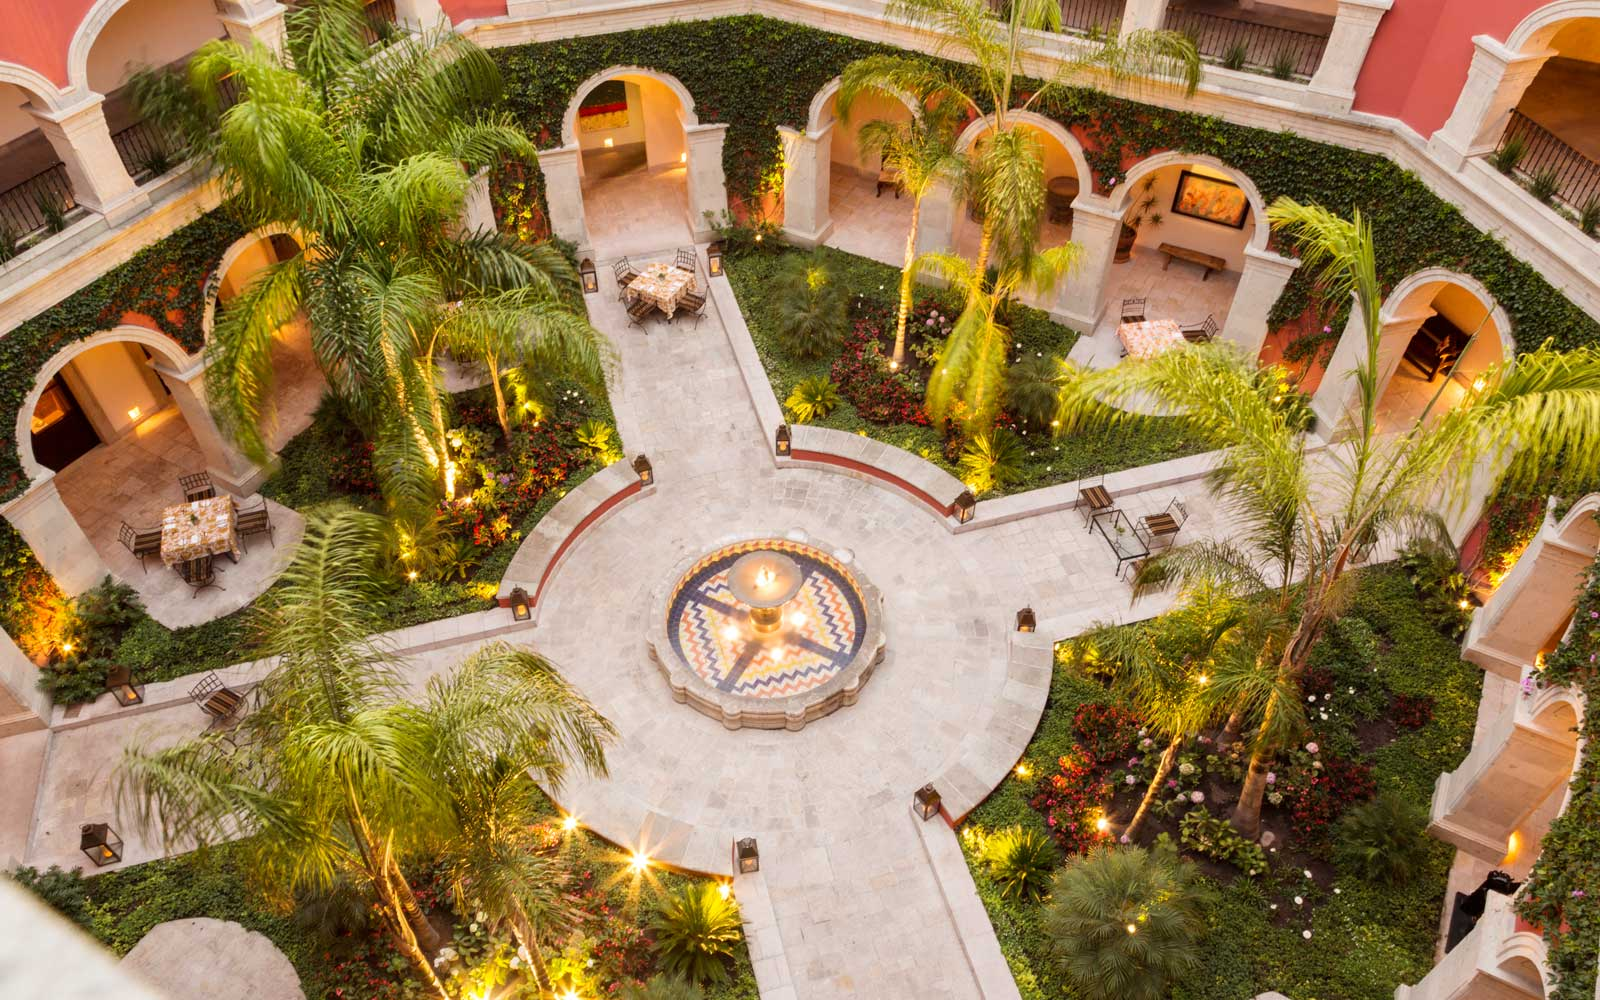 View of the interior courtyard car at Rosewood San Miguel de Allende